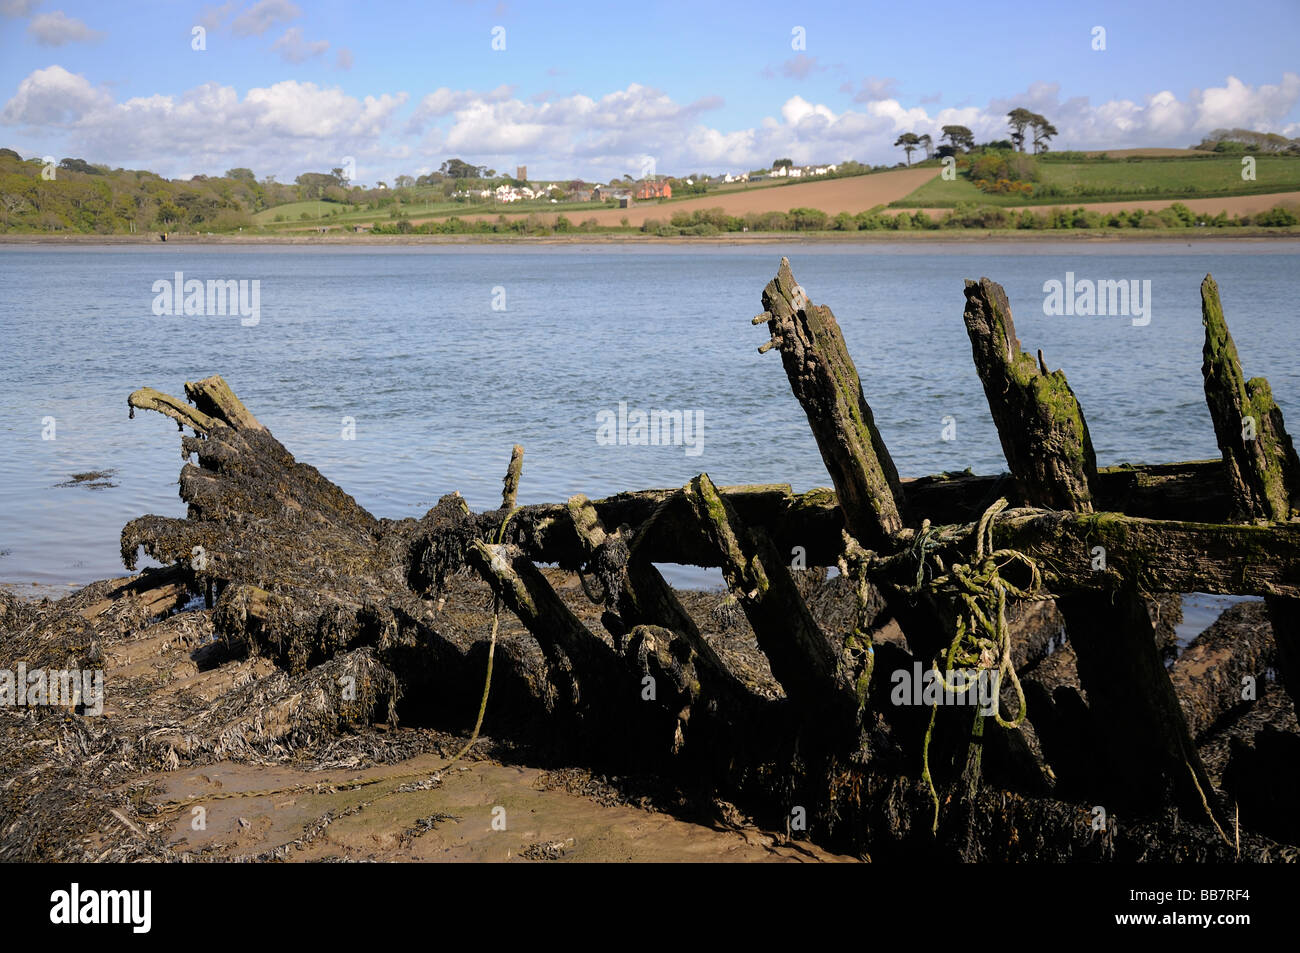 Decaying hull timbers on the banks of the river Torridge - Stock Image